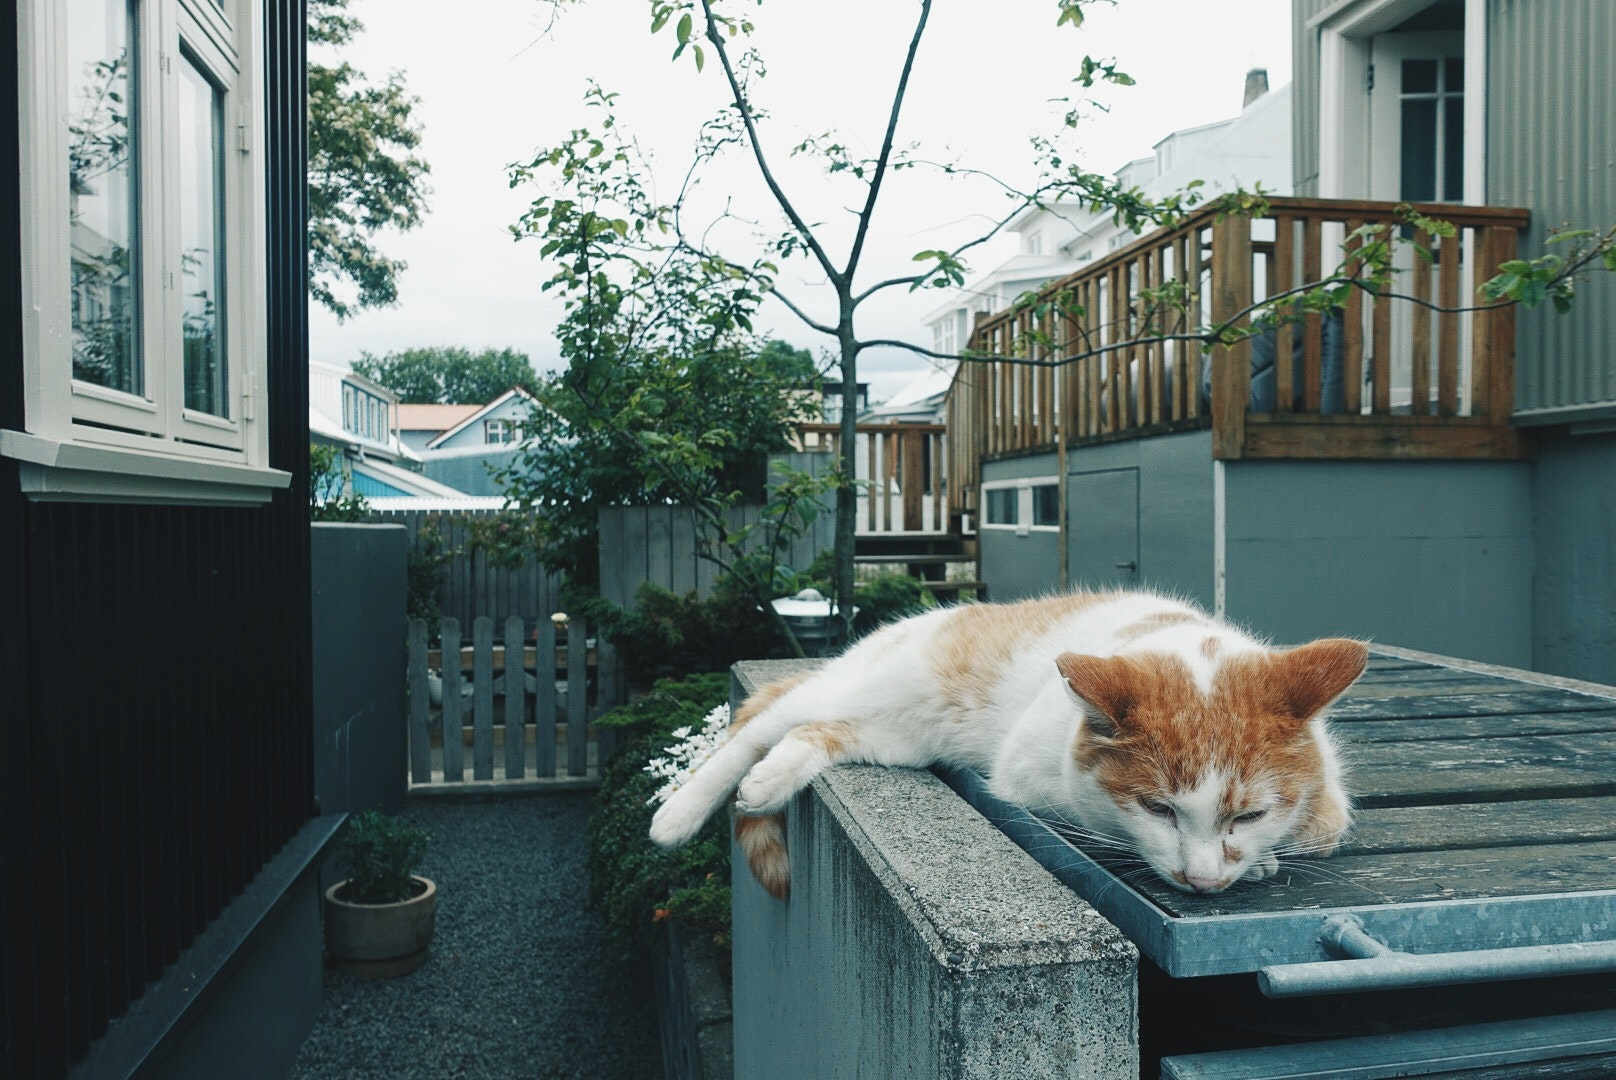 A cat lounging around in downtown Reykjavik,